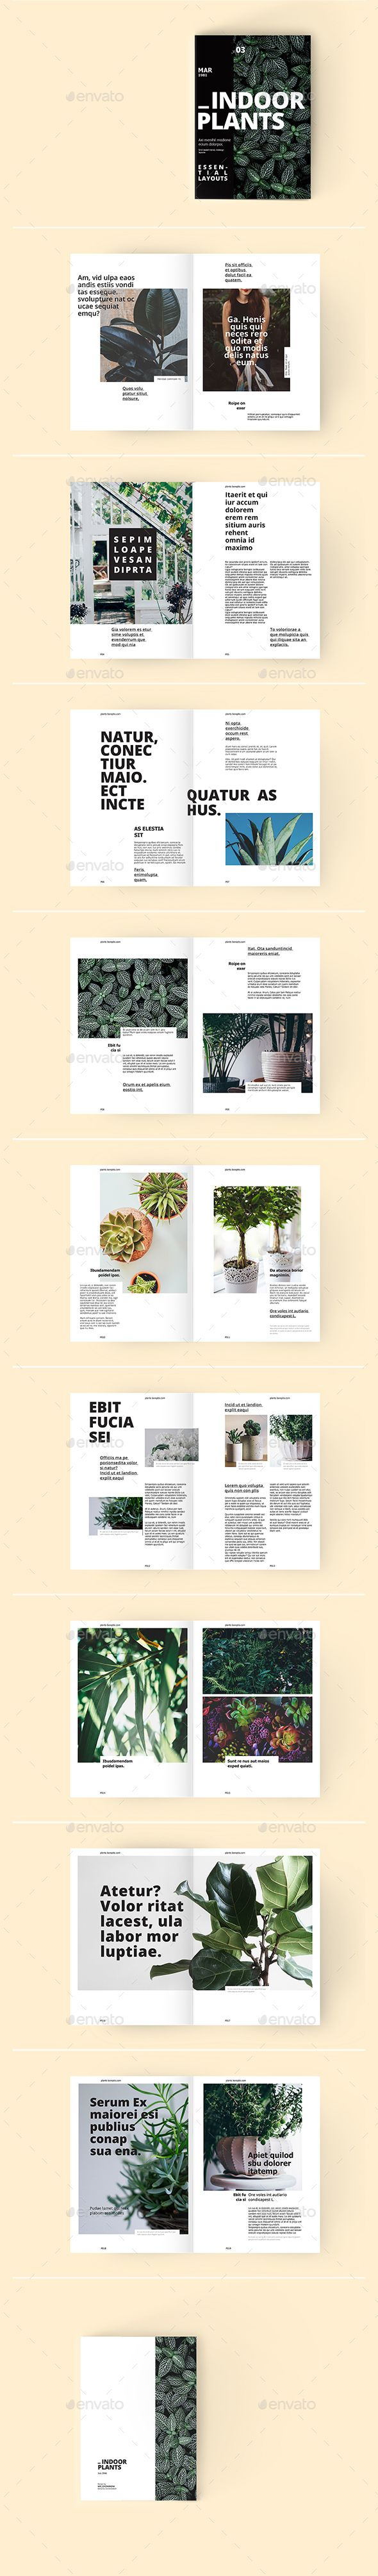 Indoor Plants - A Magazine Template | Indesign templates, Template ...